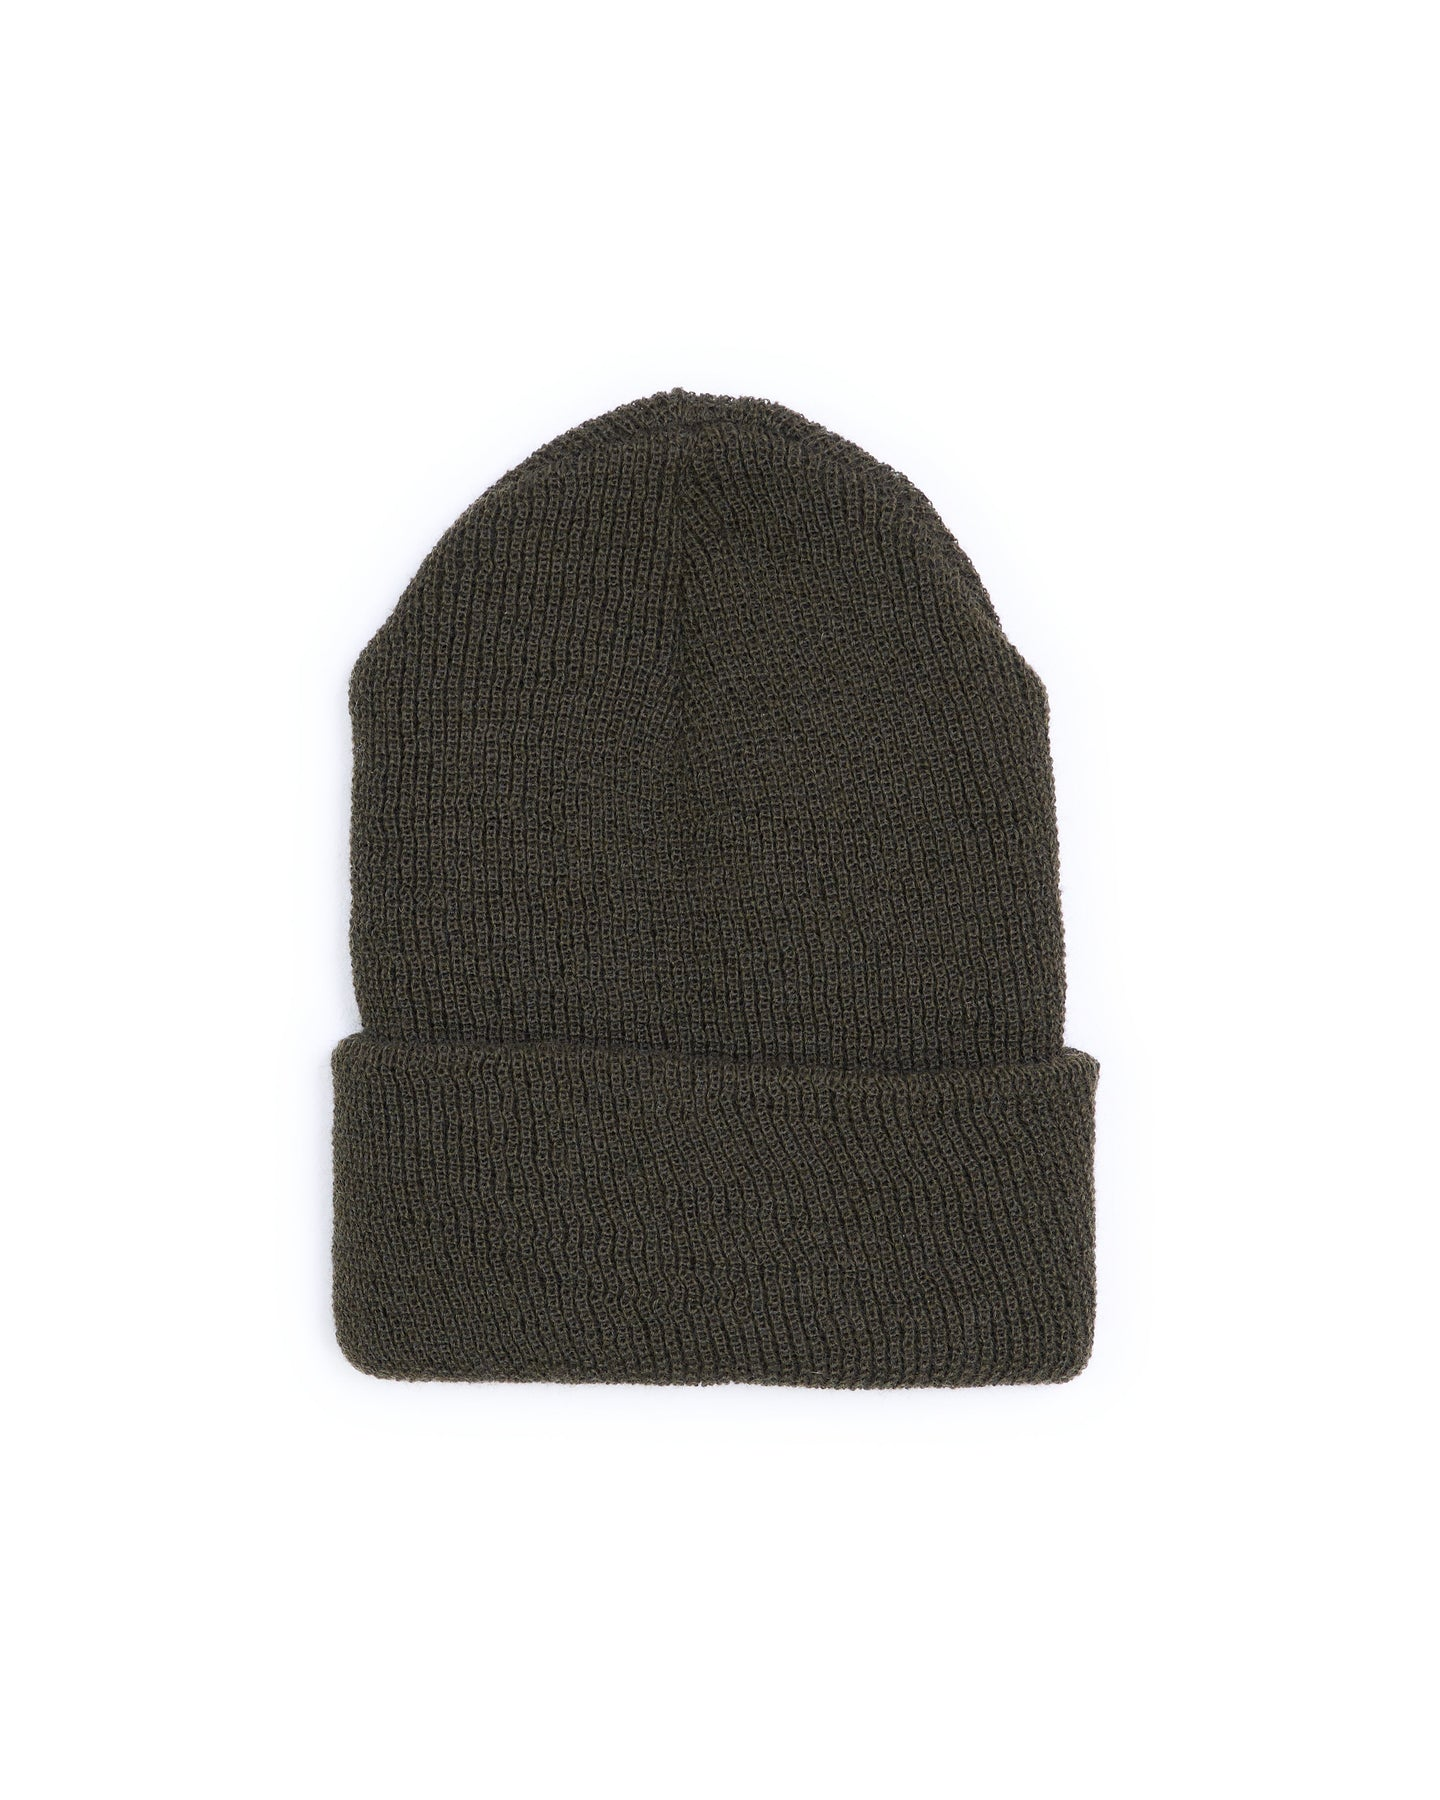 Wool Military Watch Cap - Green